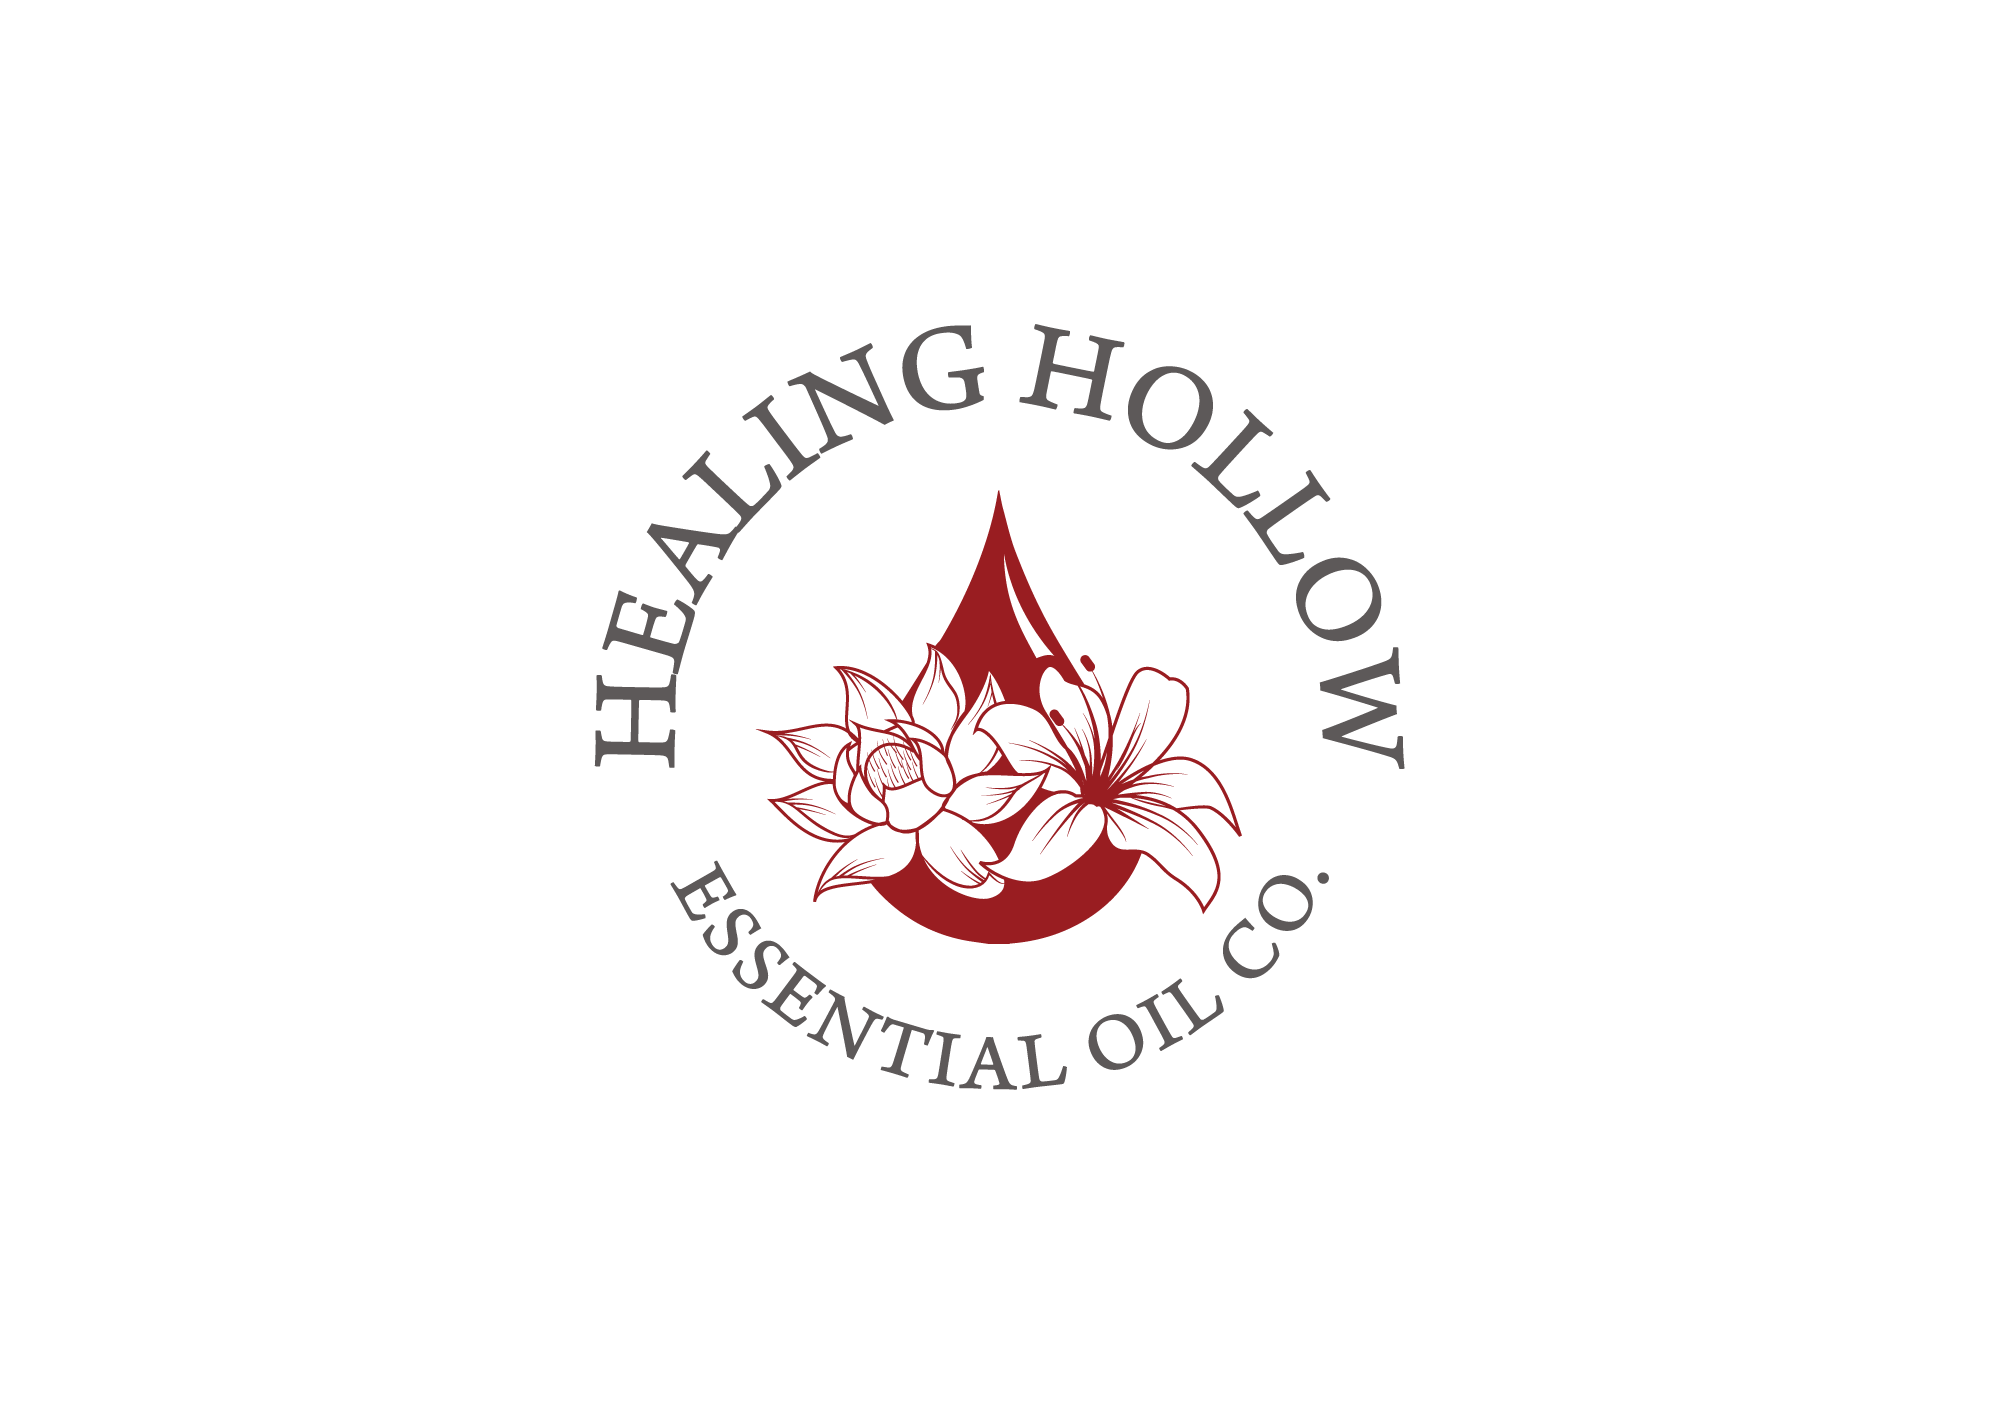 ReBrand a large Essential Oil Company to make it stand out above the rest.